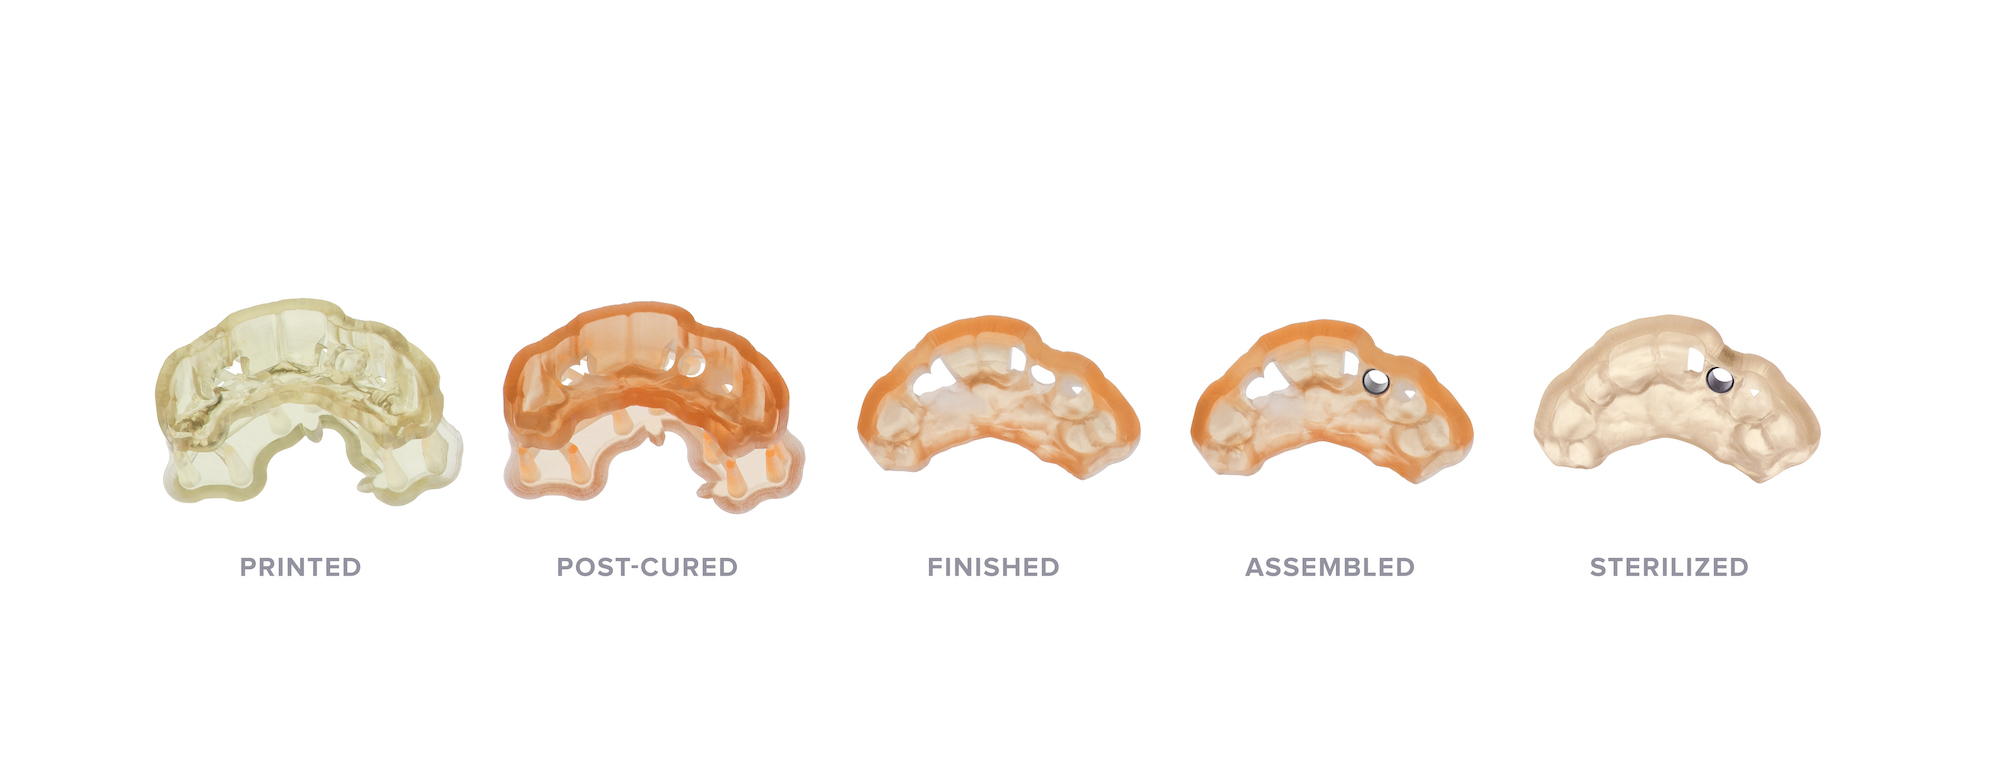 Formlabs Announces Dental SG: The First Biocompatible Resin